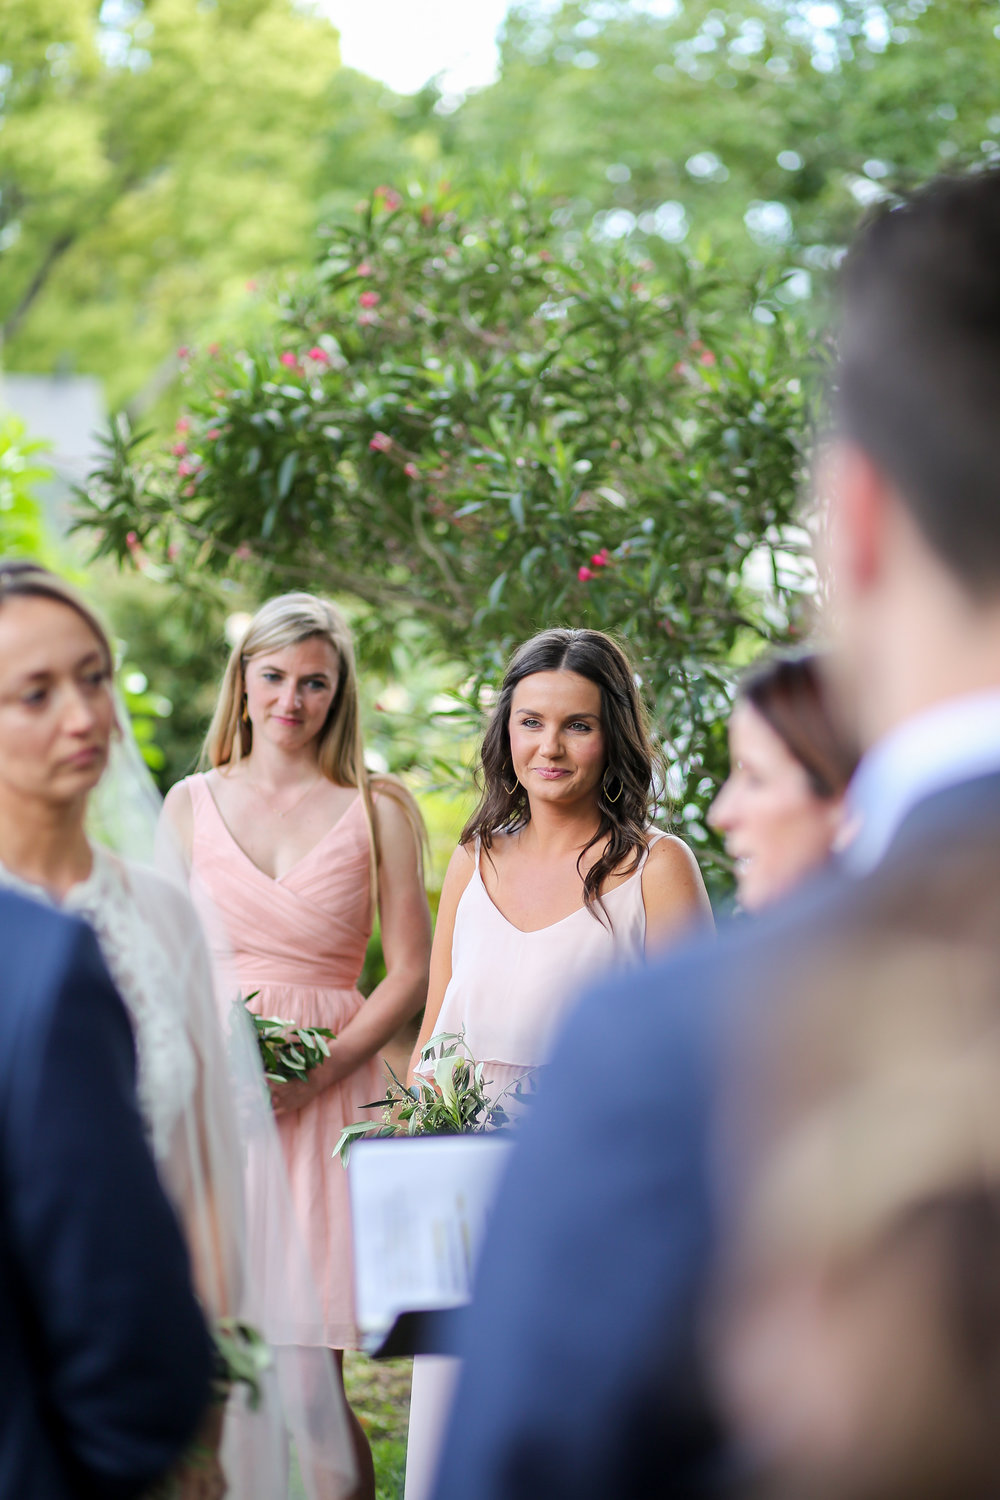 AllisonandScott'sApril2016Wedding-288.jpg